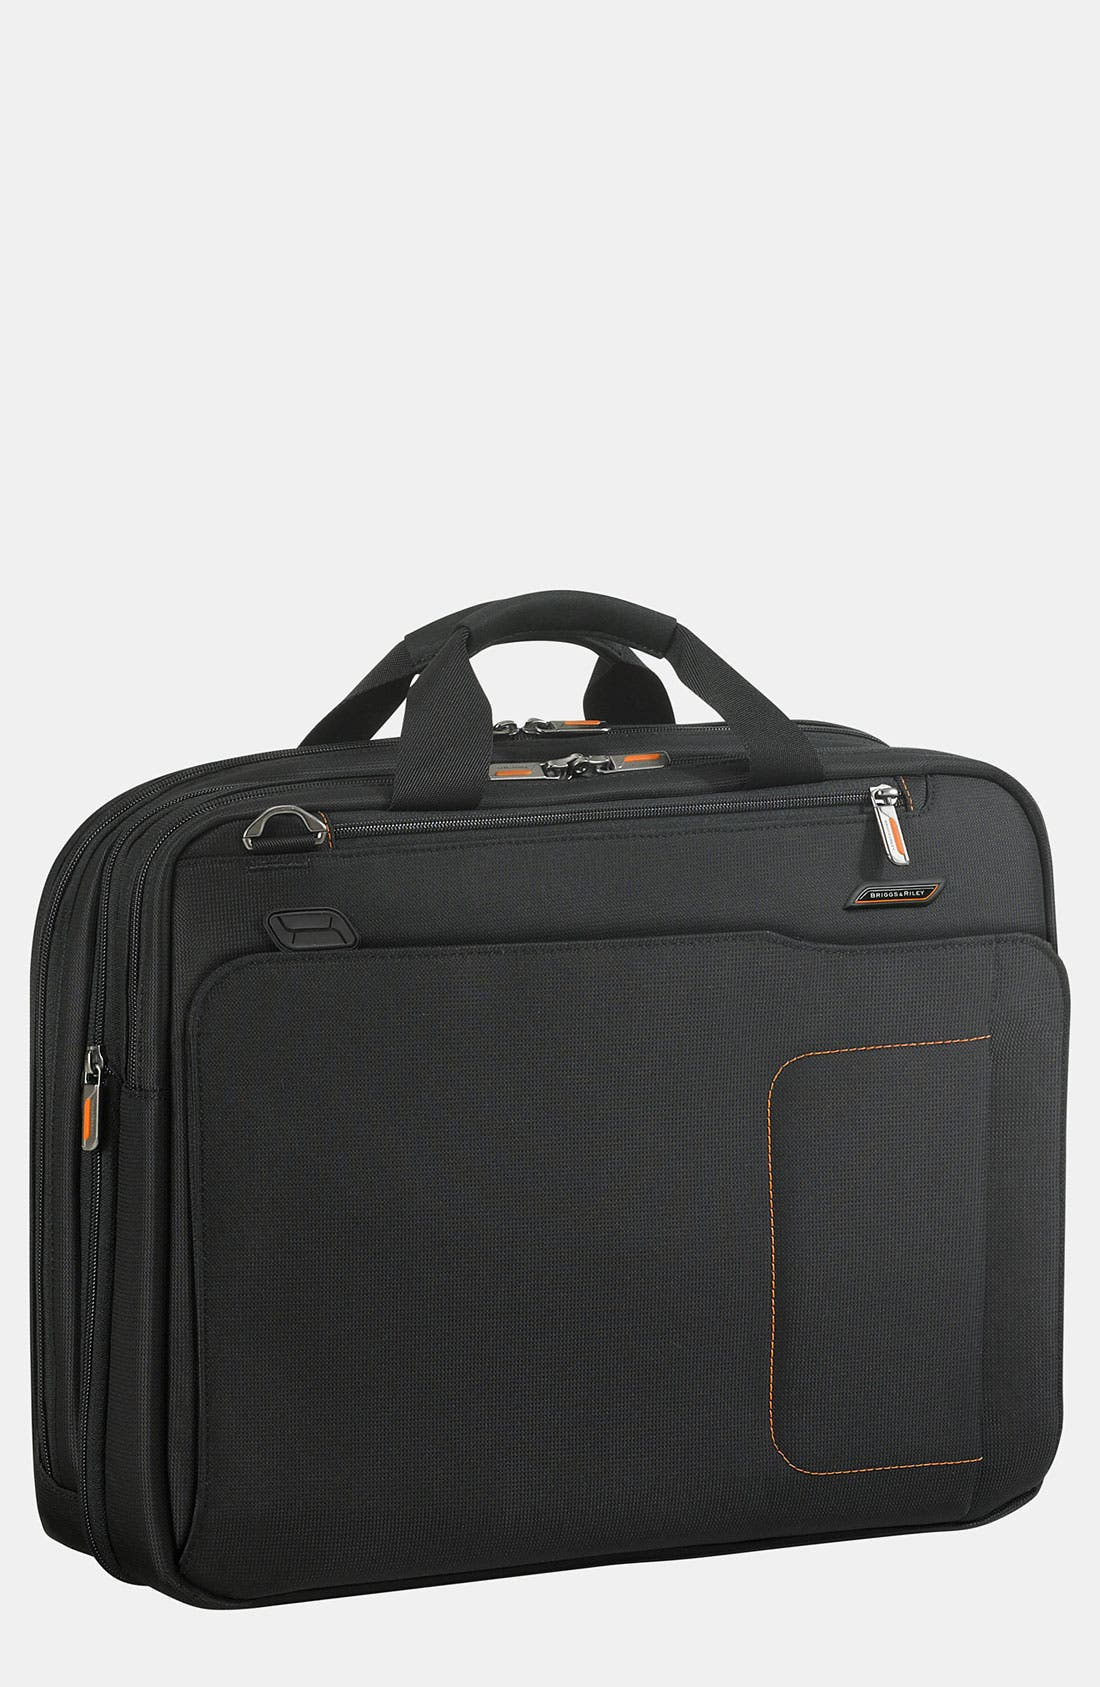 Alternate Image 1 Selected - Briggs & Riley 'Verb - Amplify' Expandable Briefcase